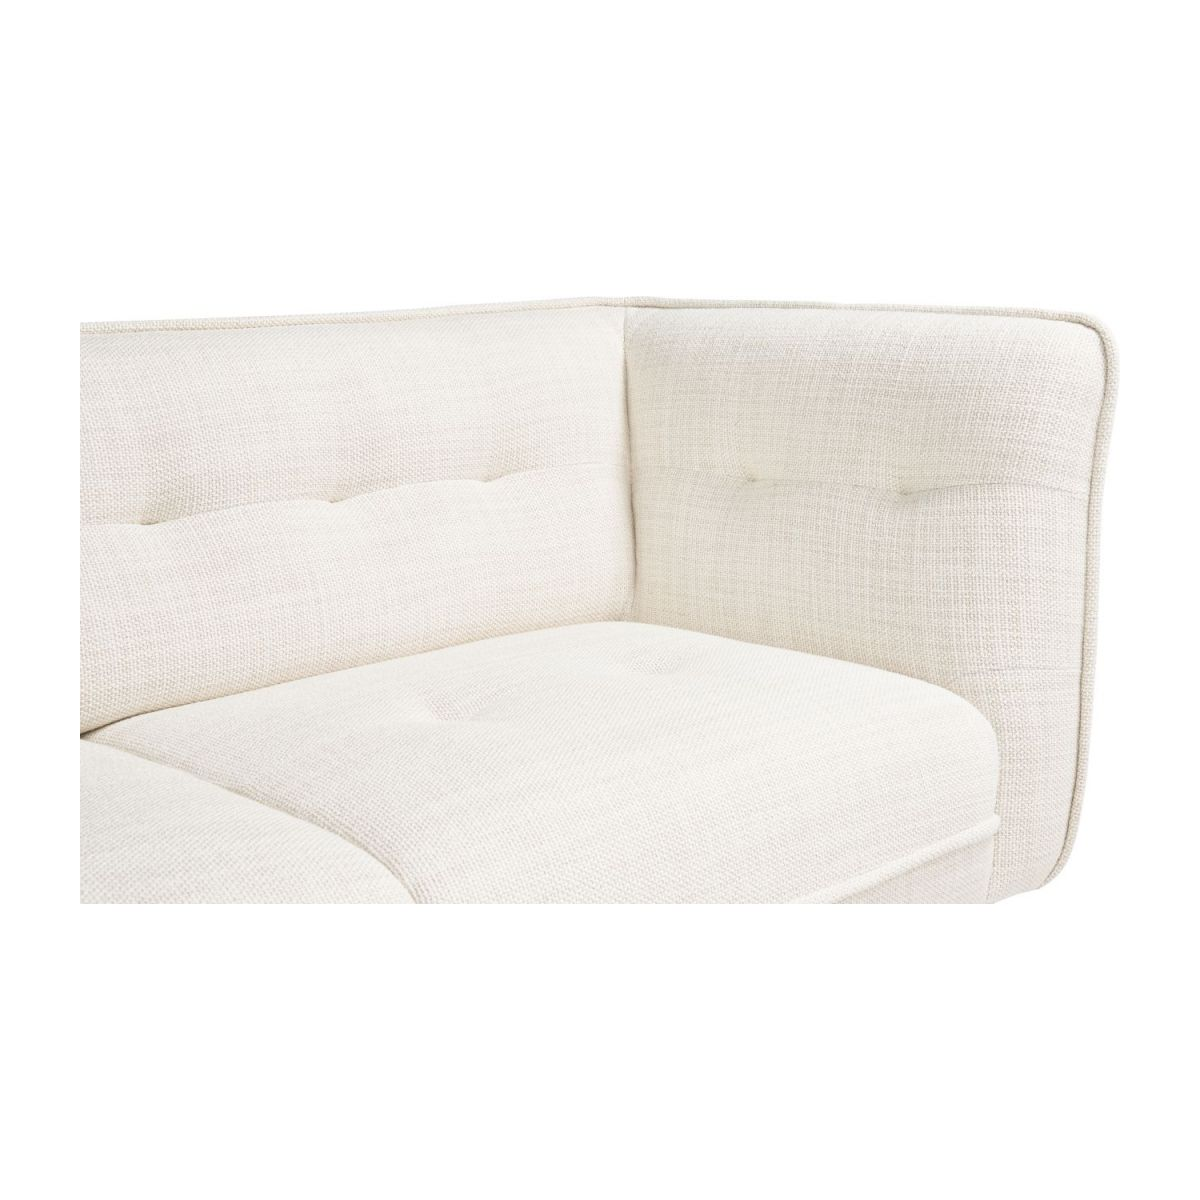 2 seater sofa in Fasoli fabric, snow white and dark legs n°6